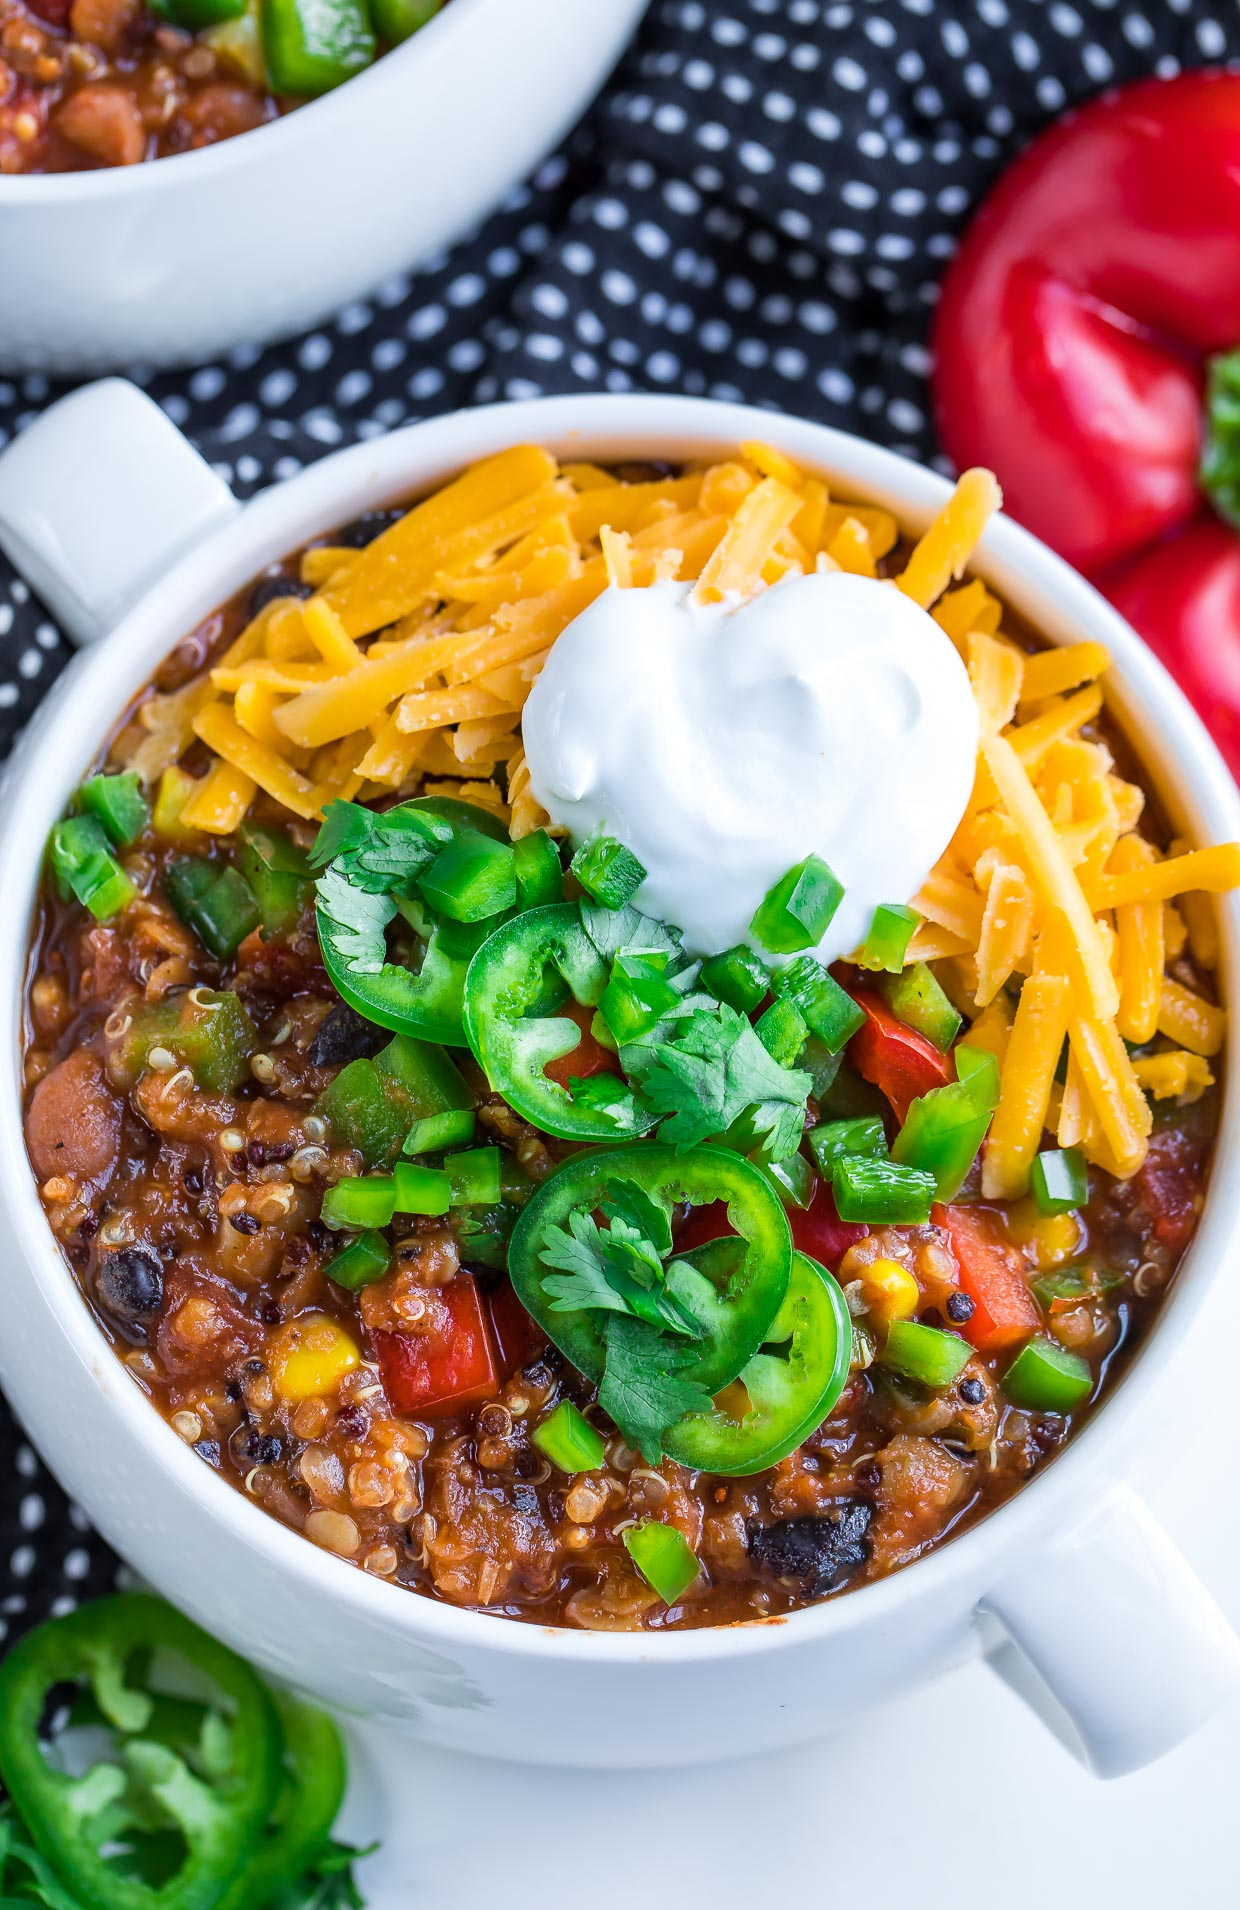 This Instant Pot Vegetarian Quinoa Chili is a comfort food classic with a healthy plant-based twist! To make things user-easy I've even included slow cooker instructions too. Game on!